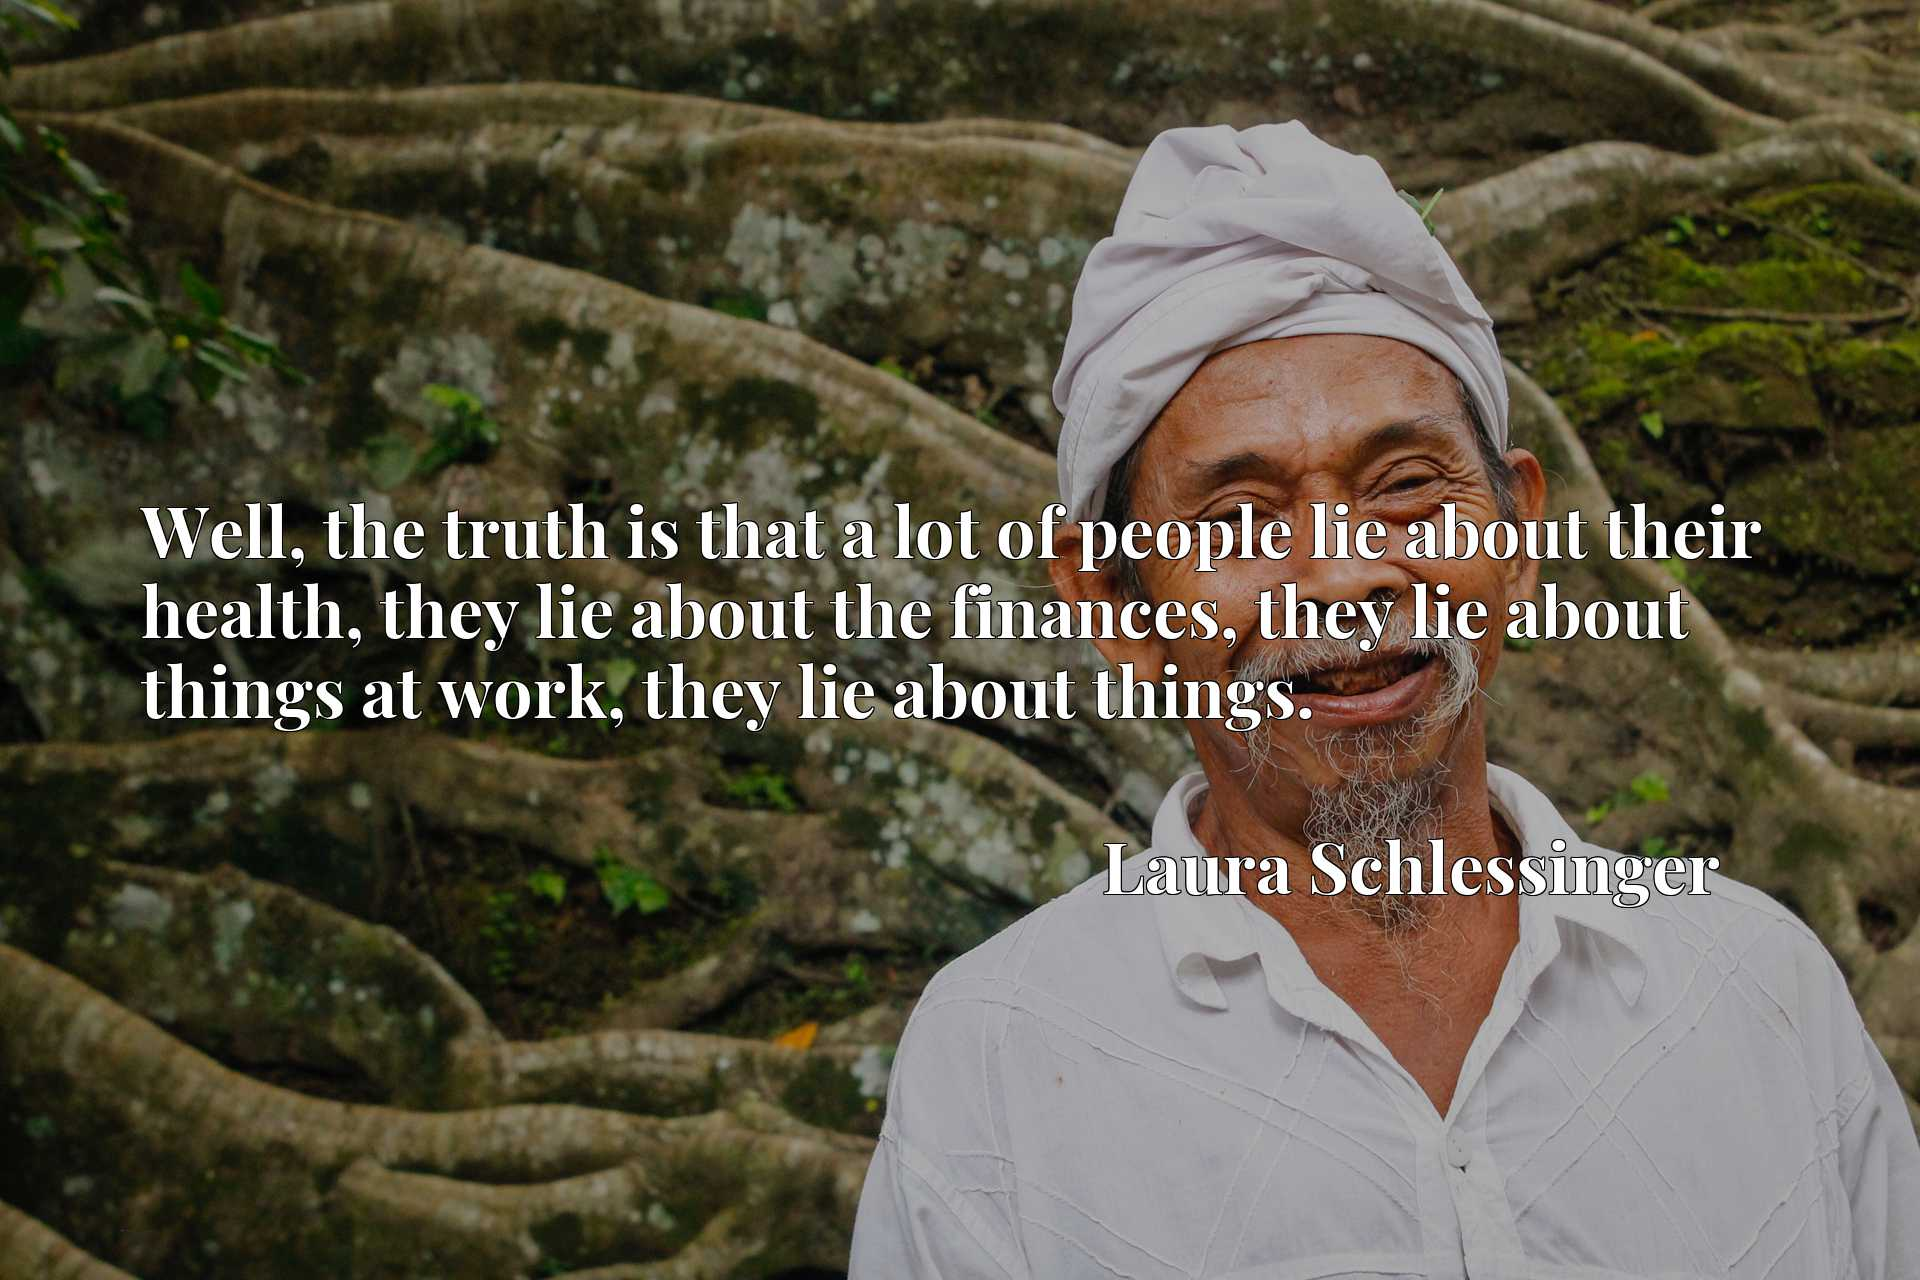 Well, the truth is that a lot of people lie about their health, they lie about the finances, they lie about things at work, they lie about things.